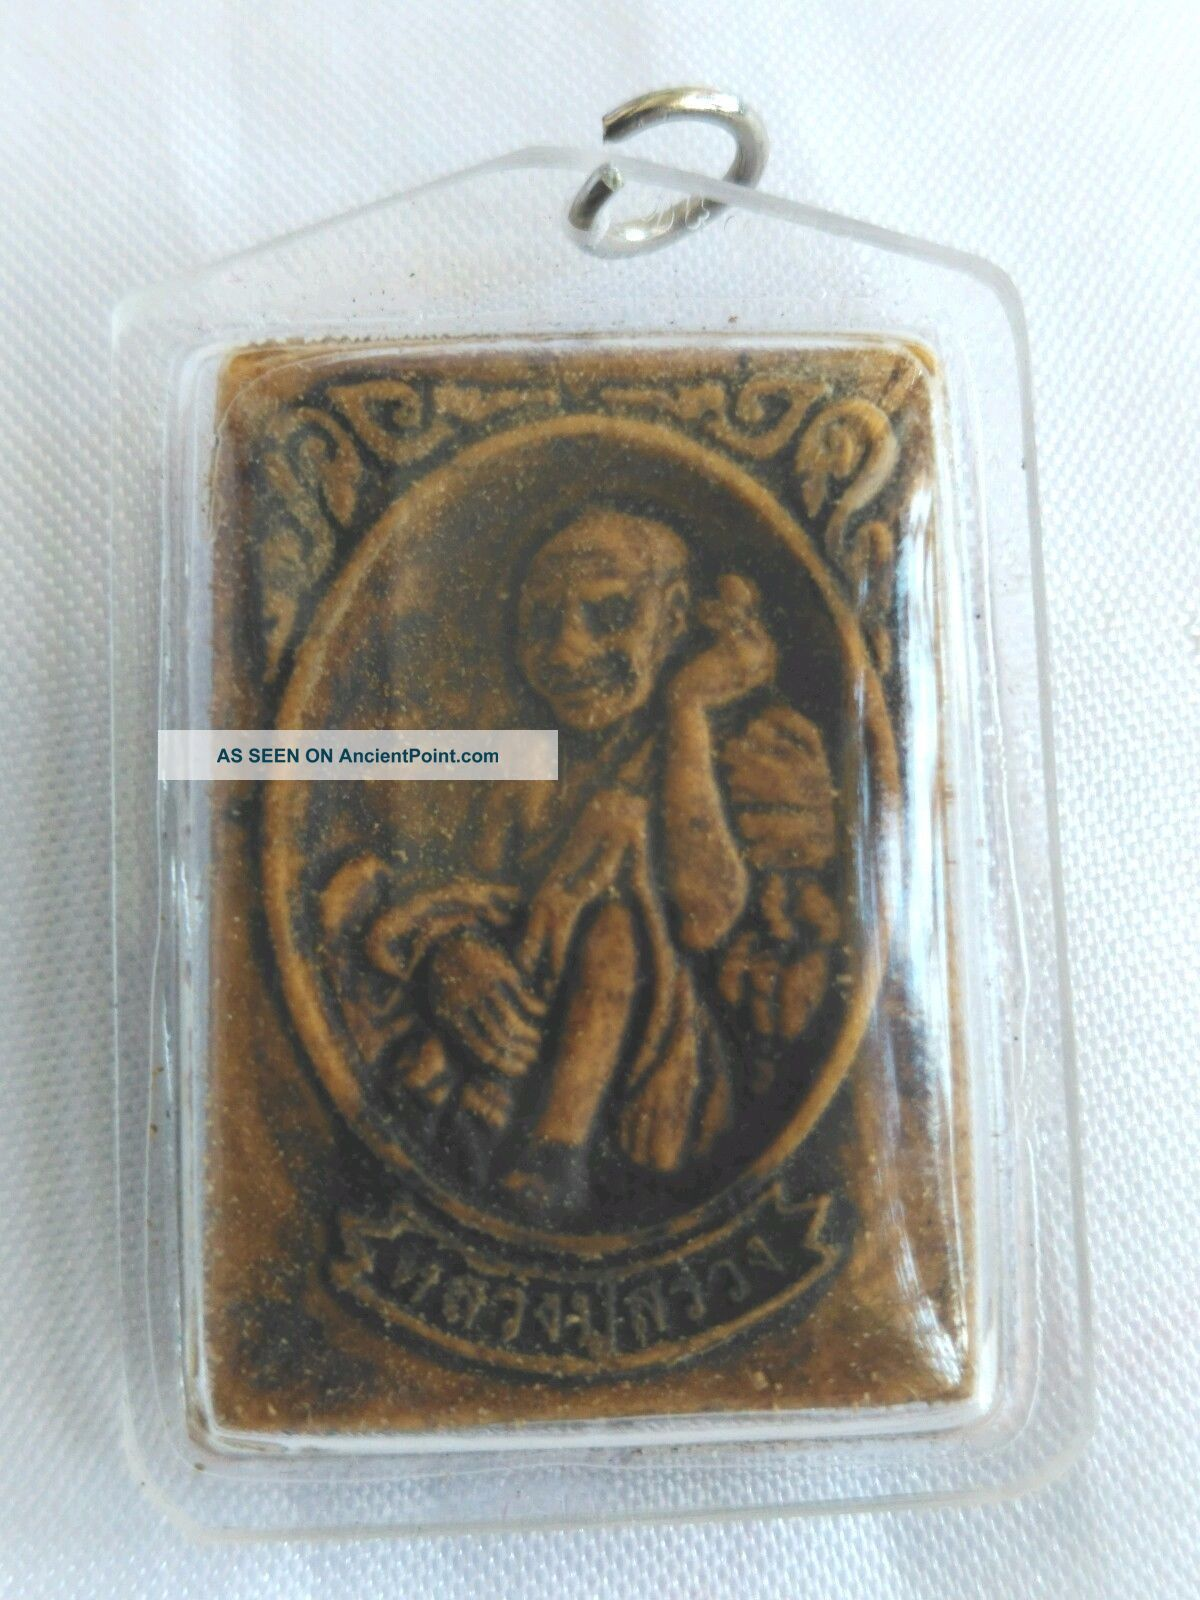 Pendant Lp Song Phra Khmer Buddha Talisman Thai Amulet For Luck Gambling Charm Amulets photo